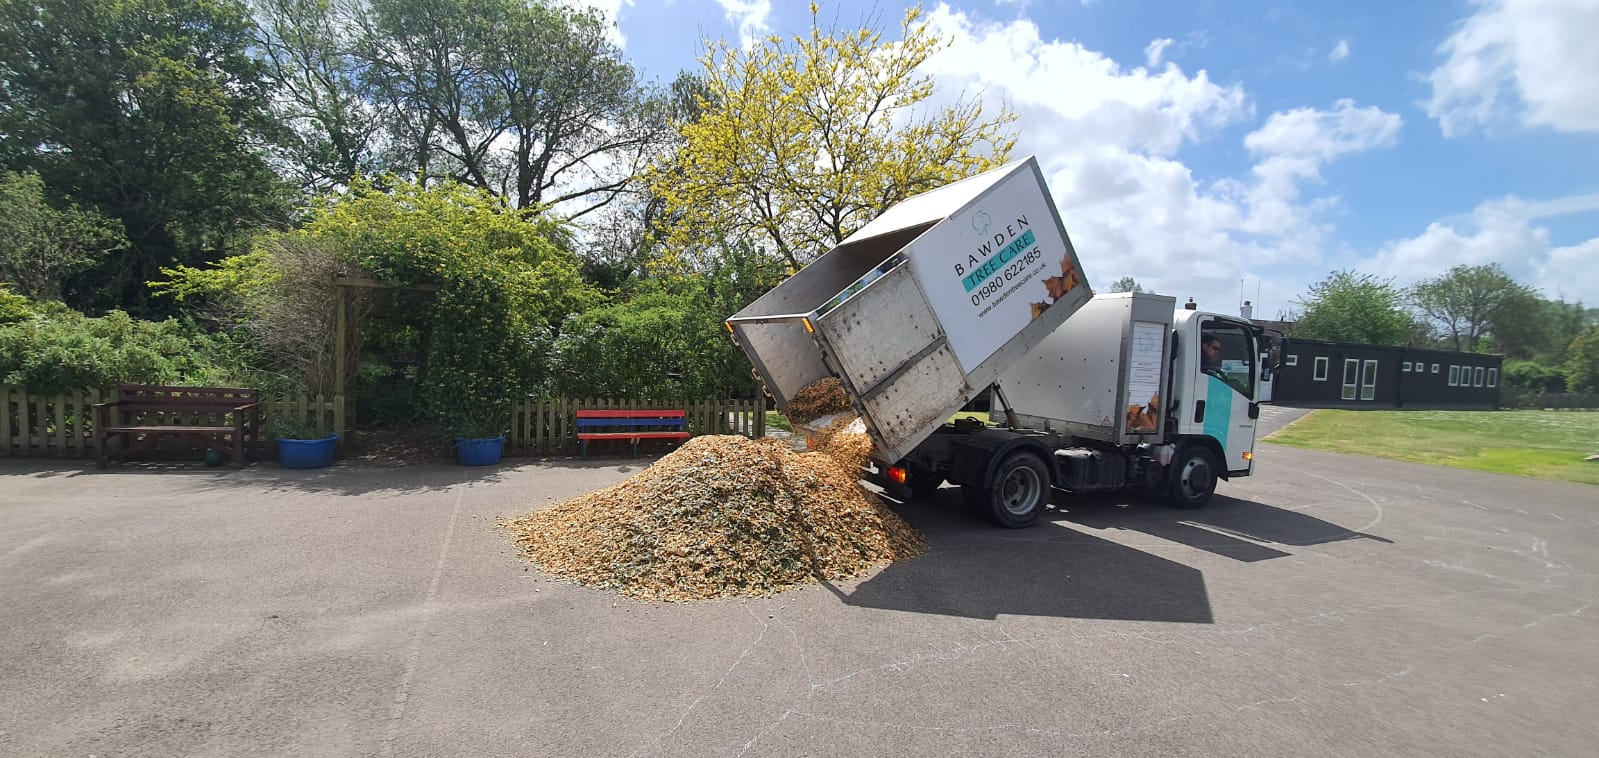 donating woodchip to a local primary school